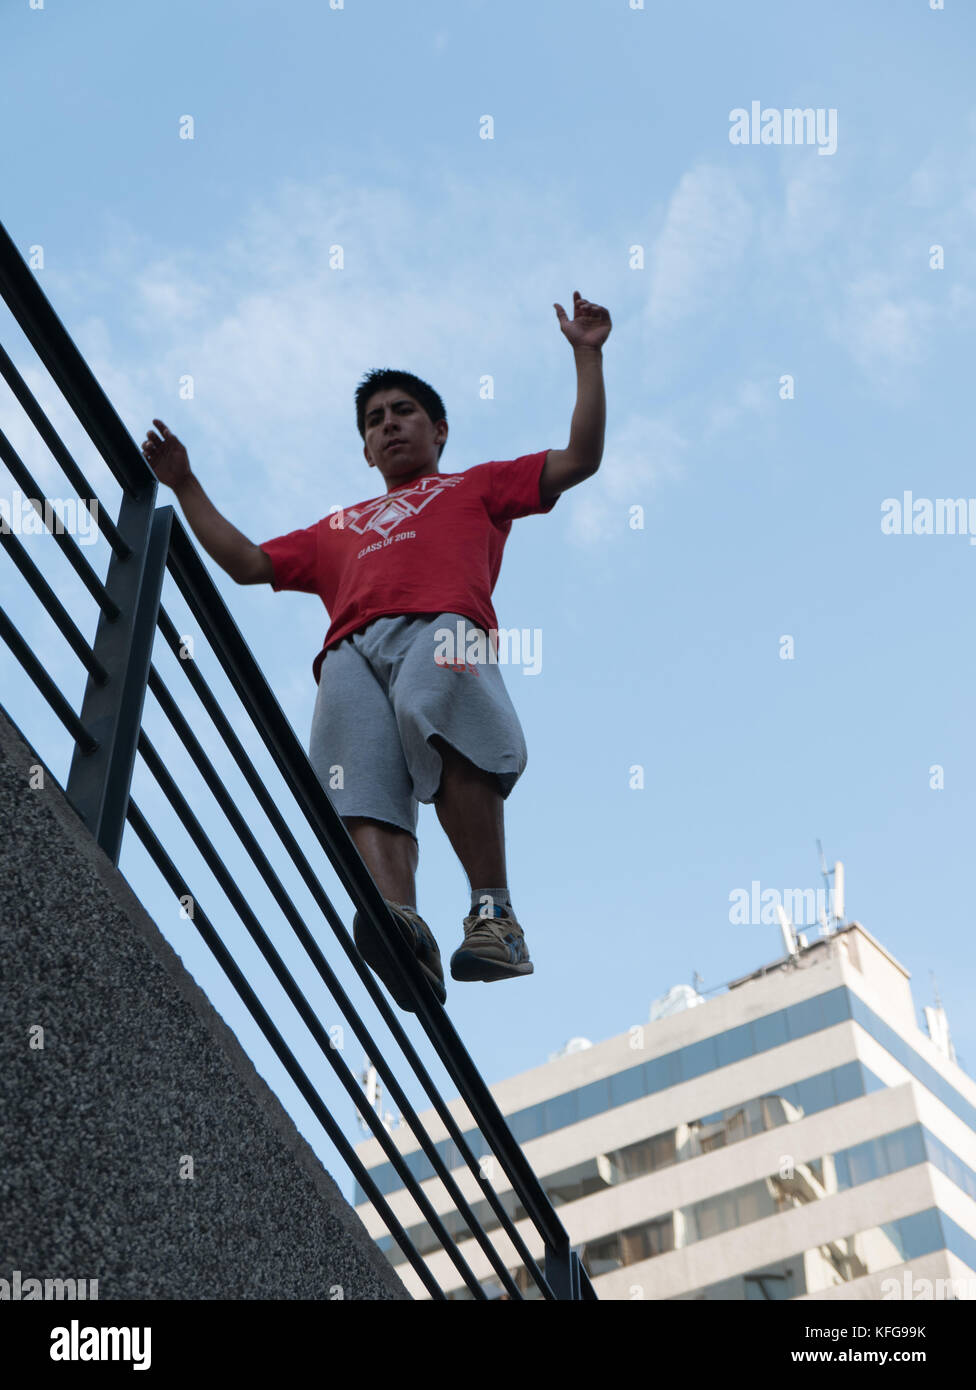 Young man in Santiago Chile engaged in parkour by balancing on a handrail high above the ground with blue sky and - Stock Image